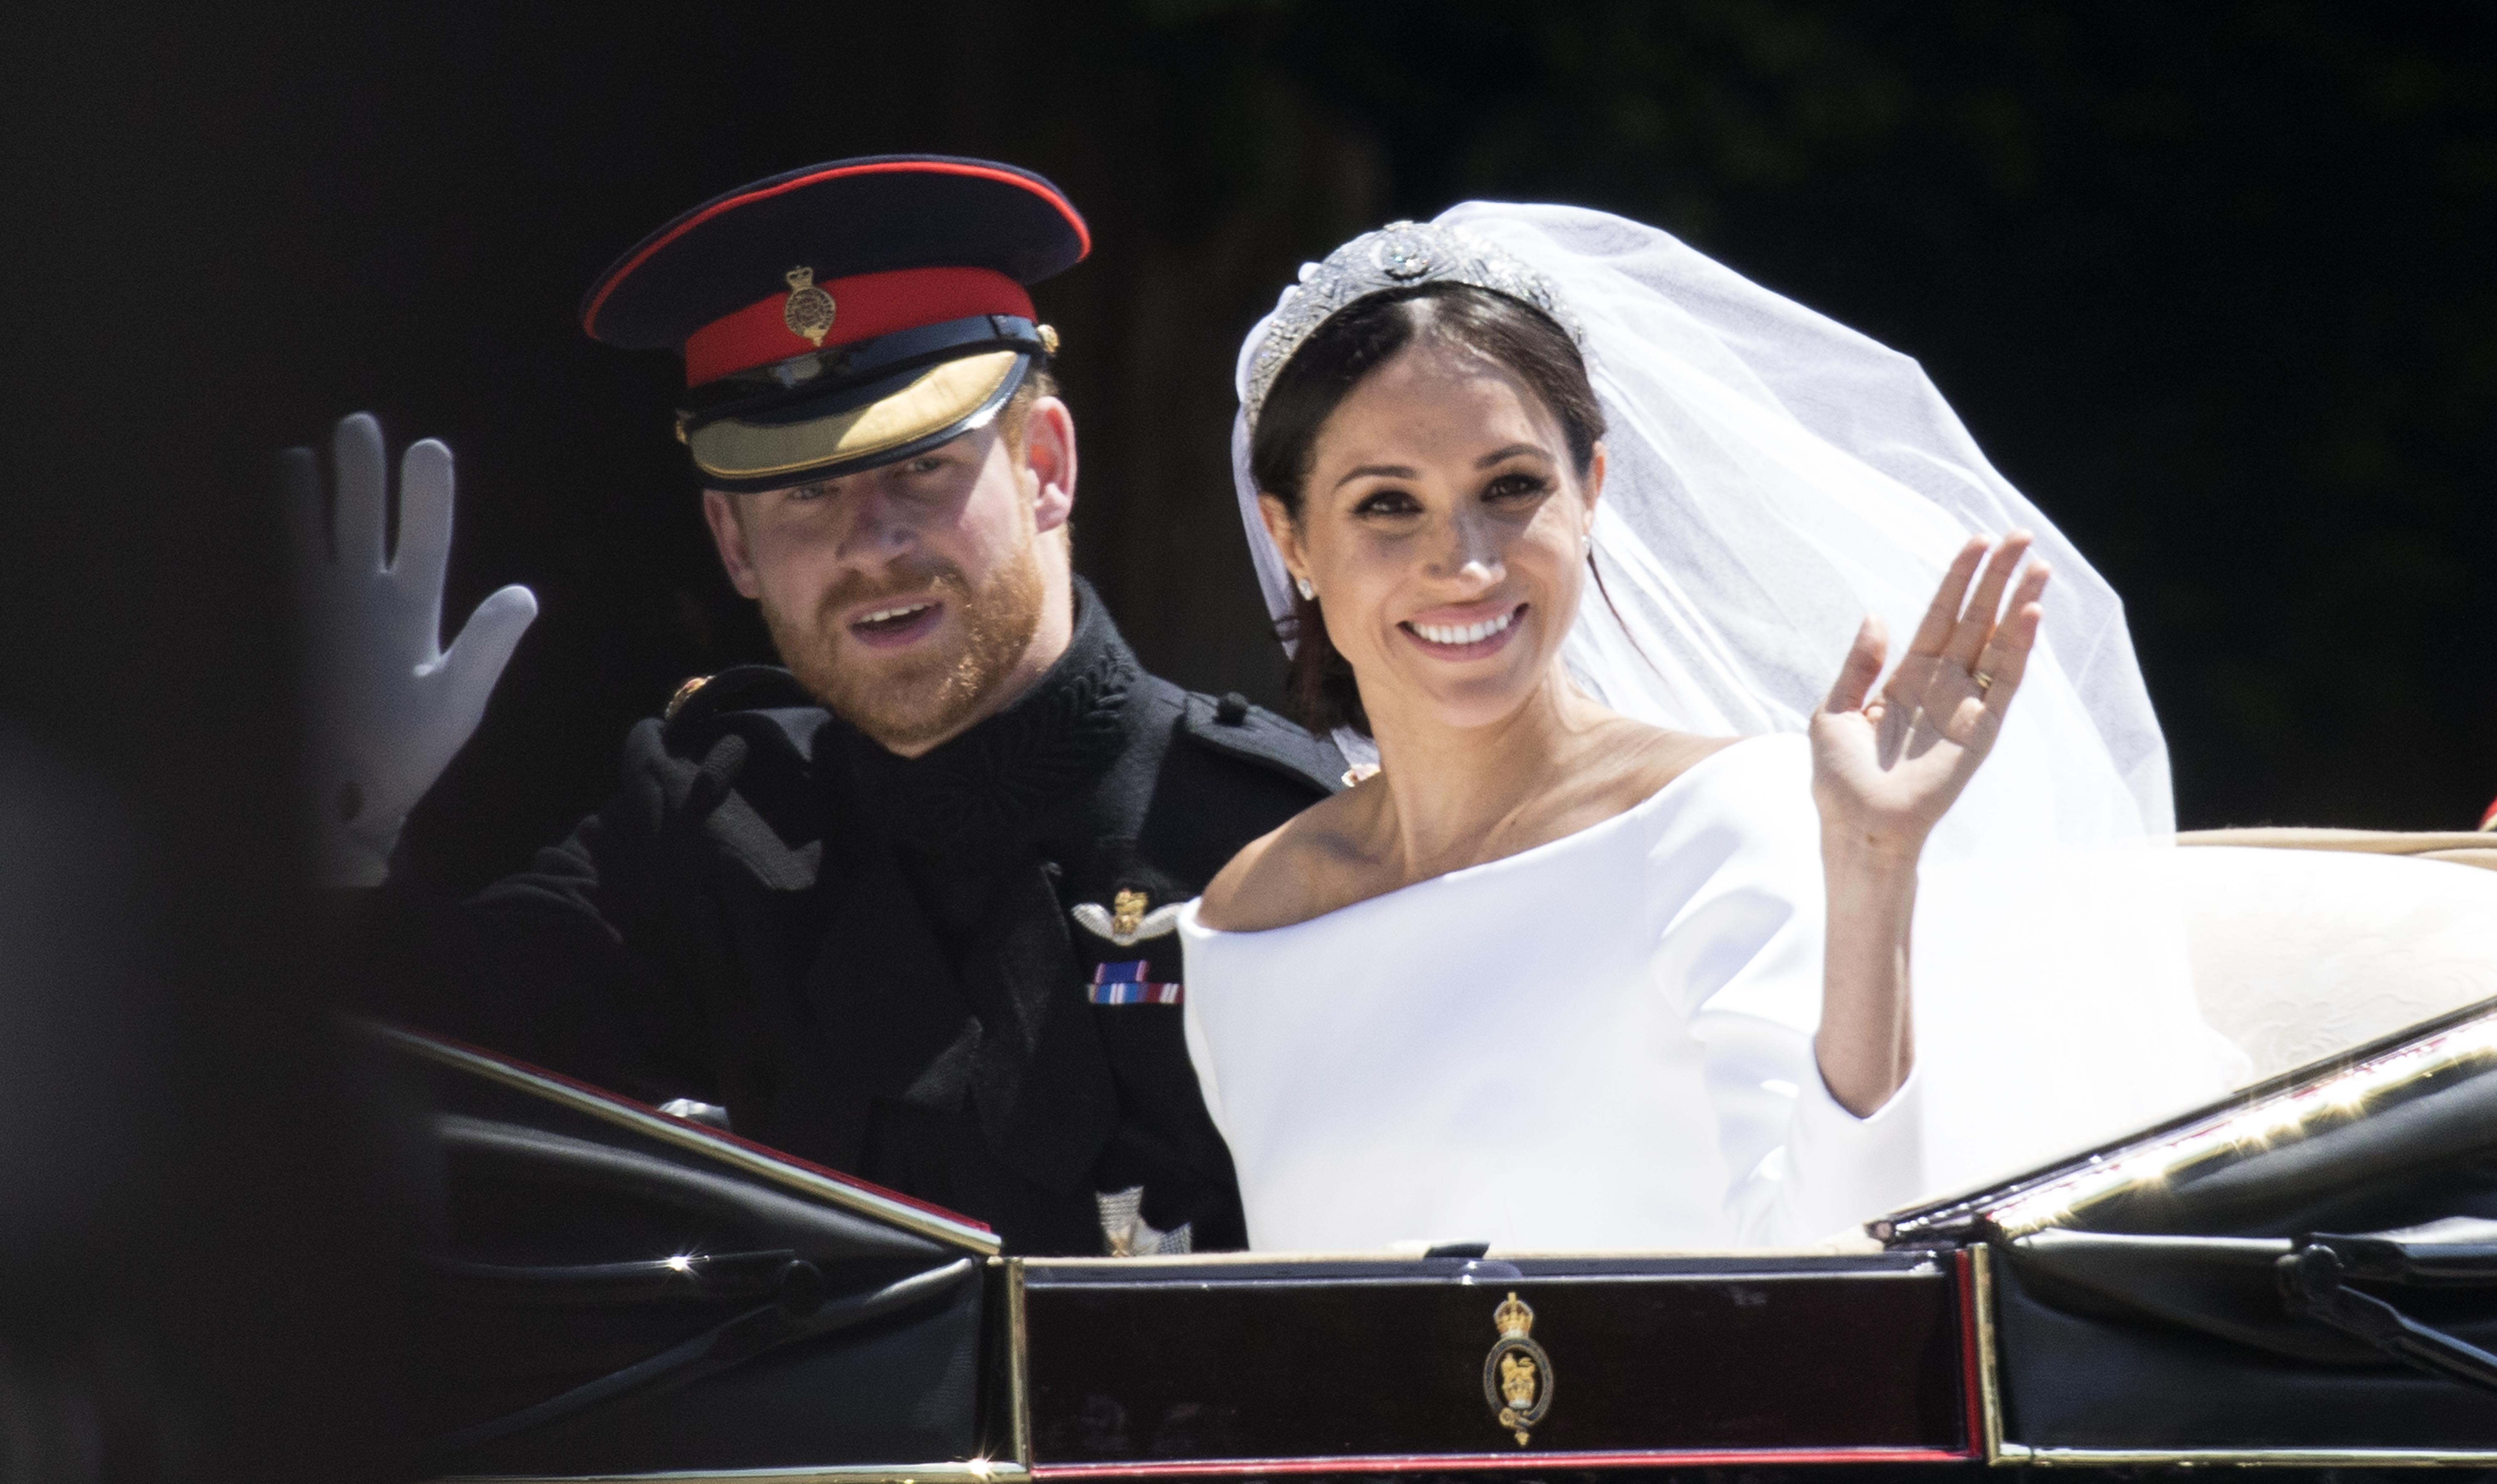 Prince Harry, Duke of Sussex and Meghan, Duchess of Sussex travel in the Ascot Landau Carriage during their carriage procession after their wedding on May 19, 2018 in Windsor, England.